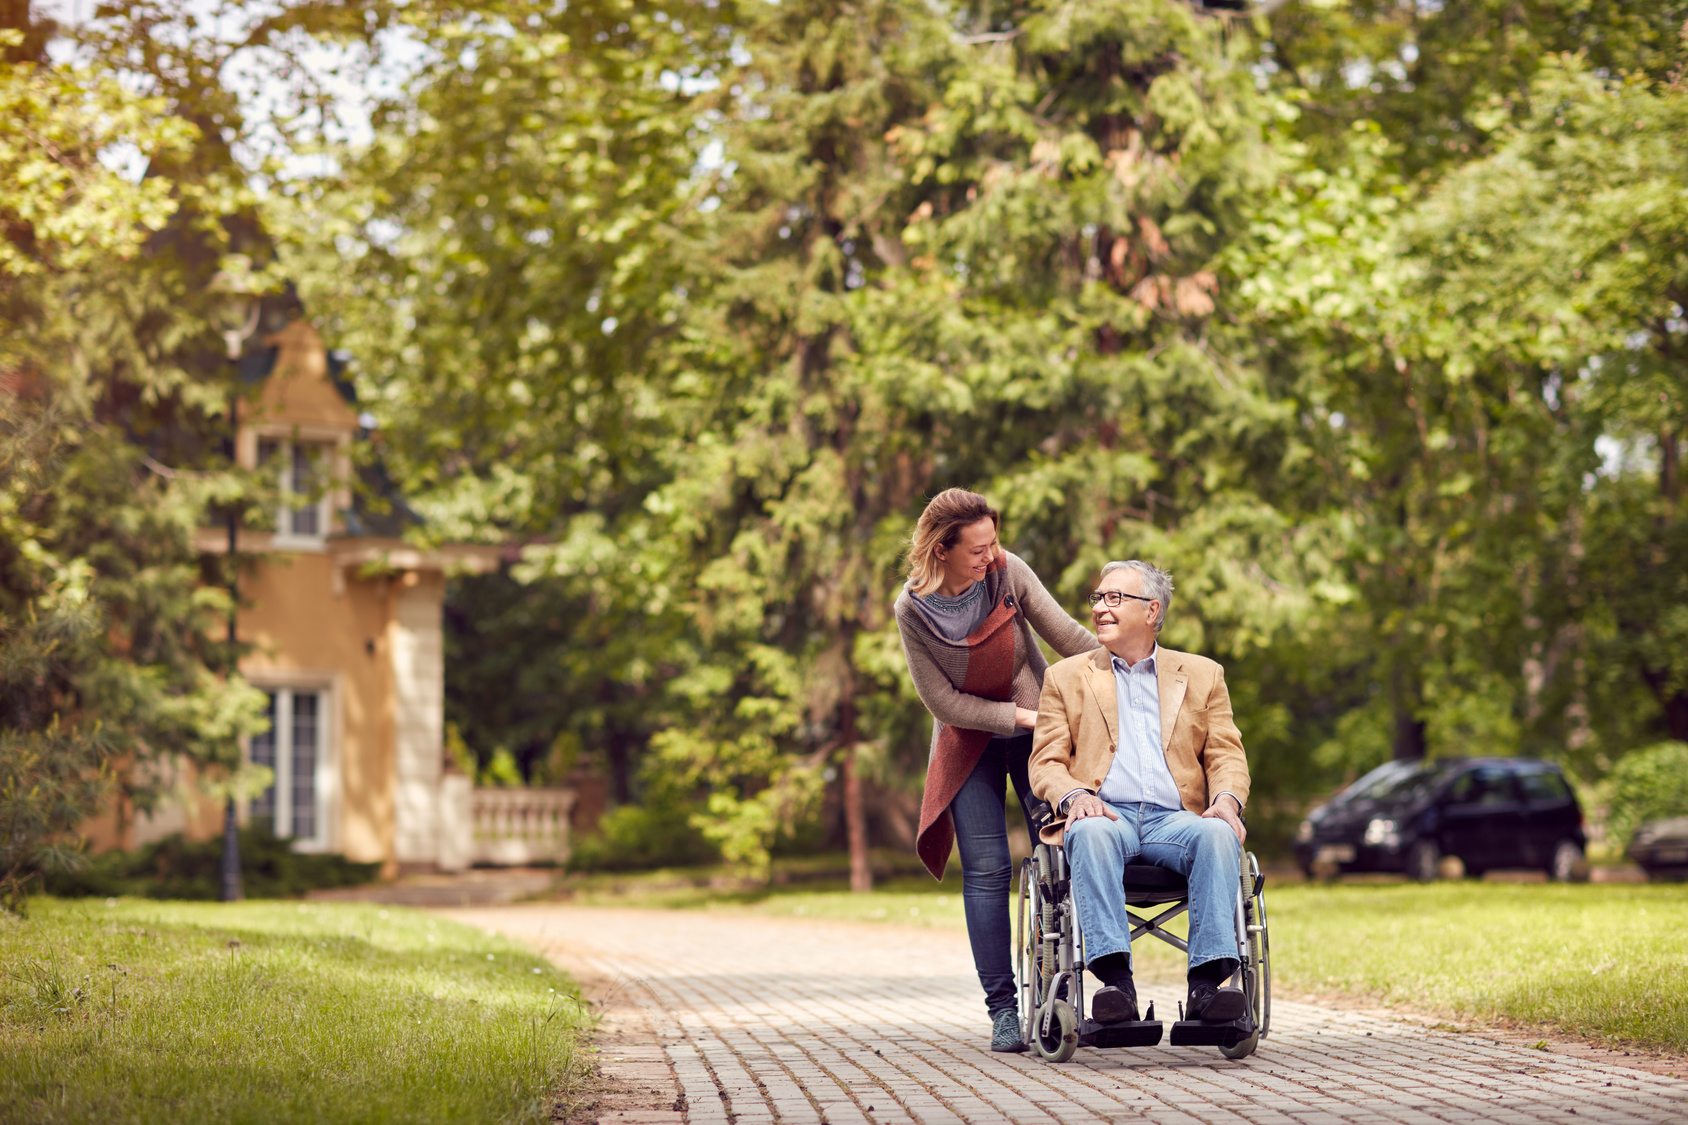 Overcharging for care home services outlawed in the UK